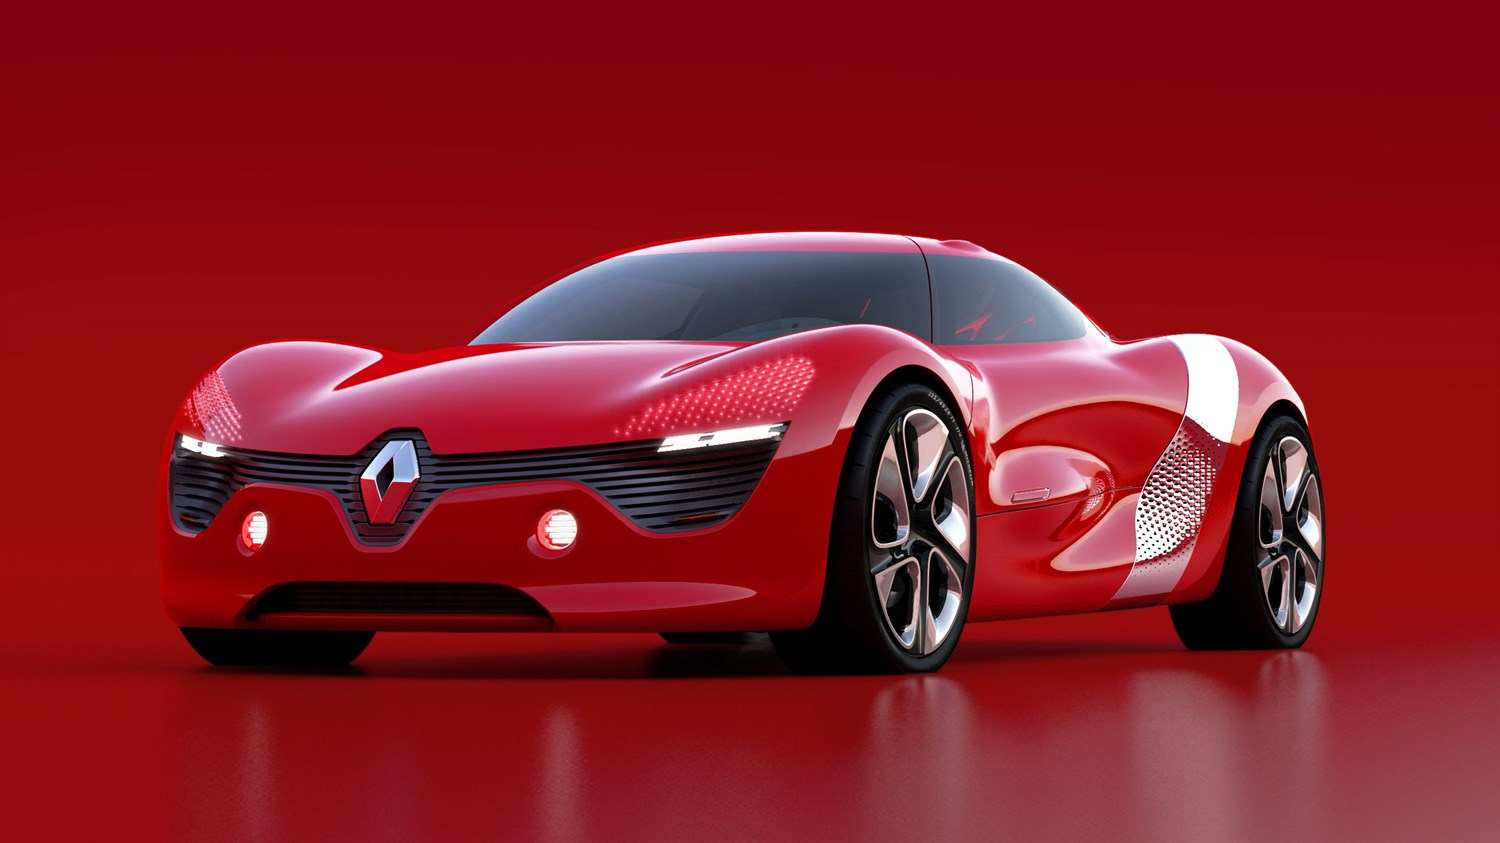 Renault DEZIR Concept - 3/4 left front end view on red background